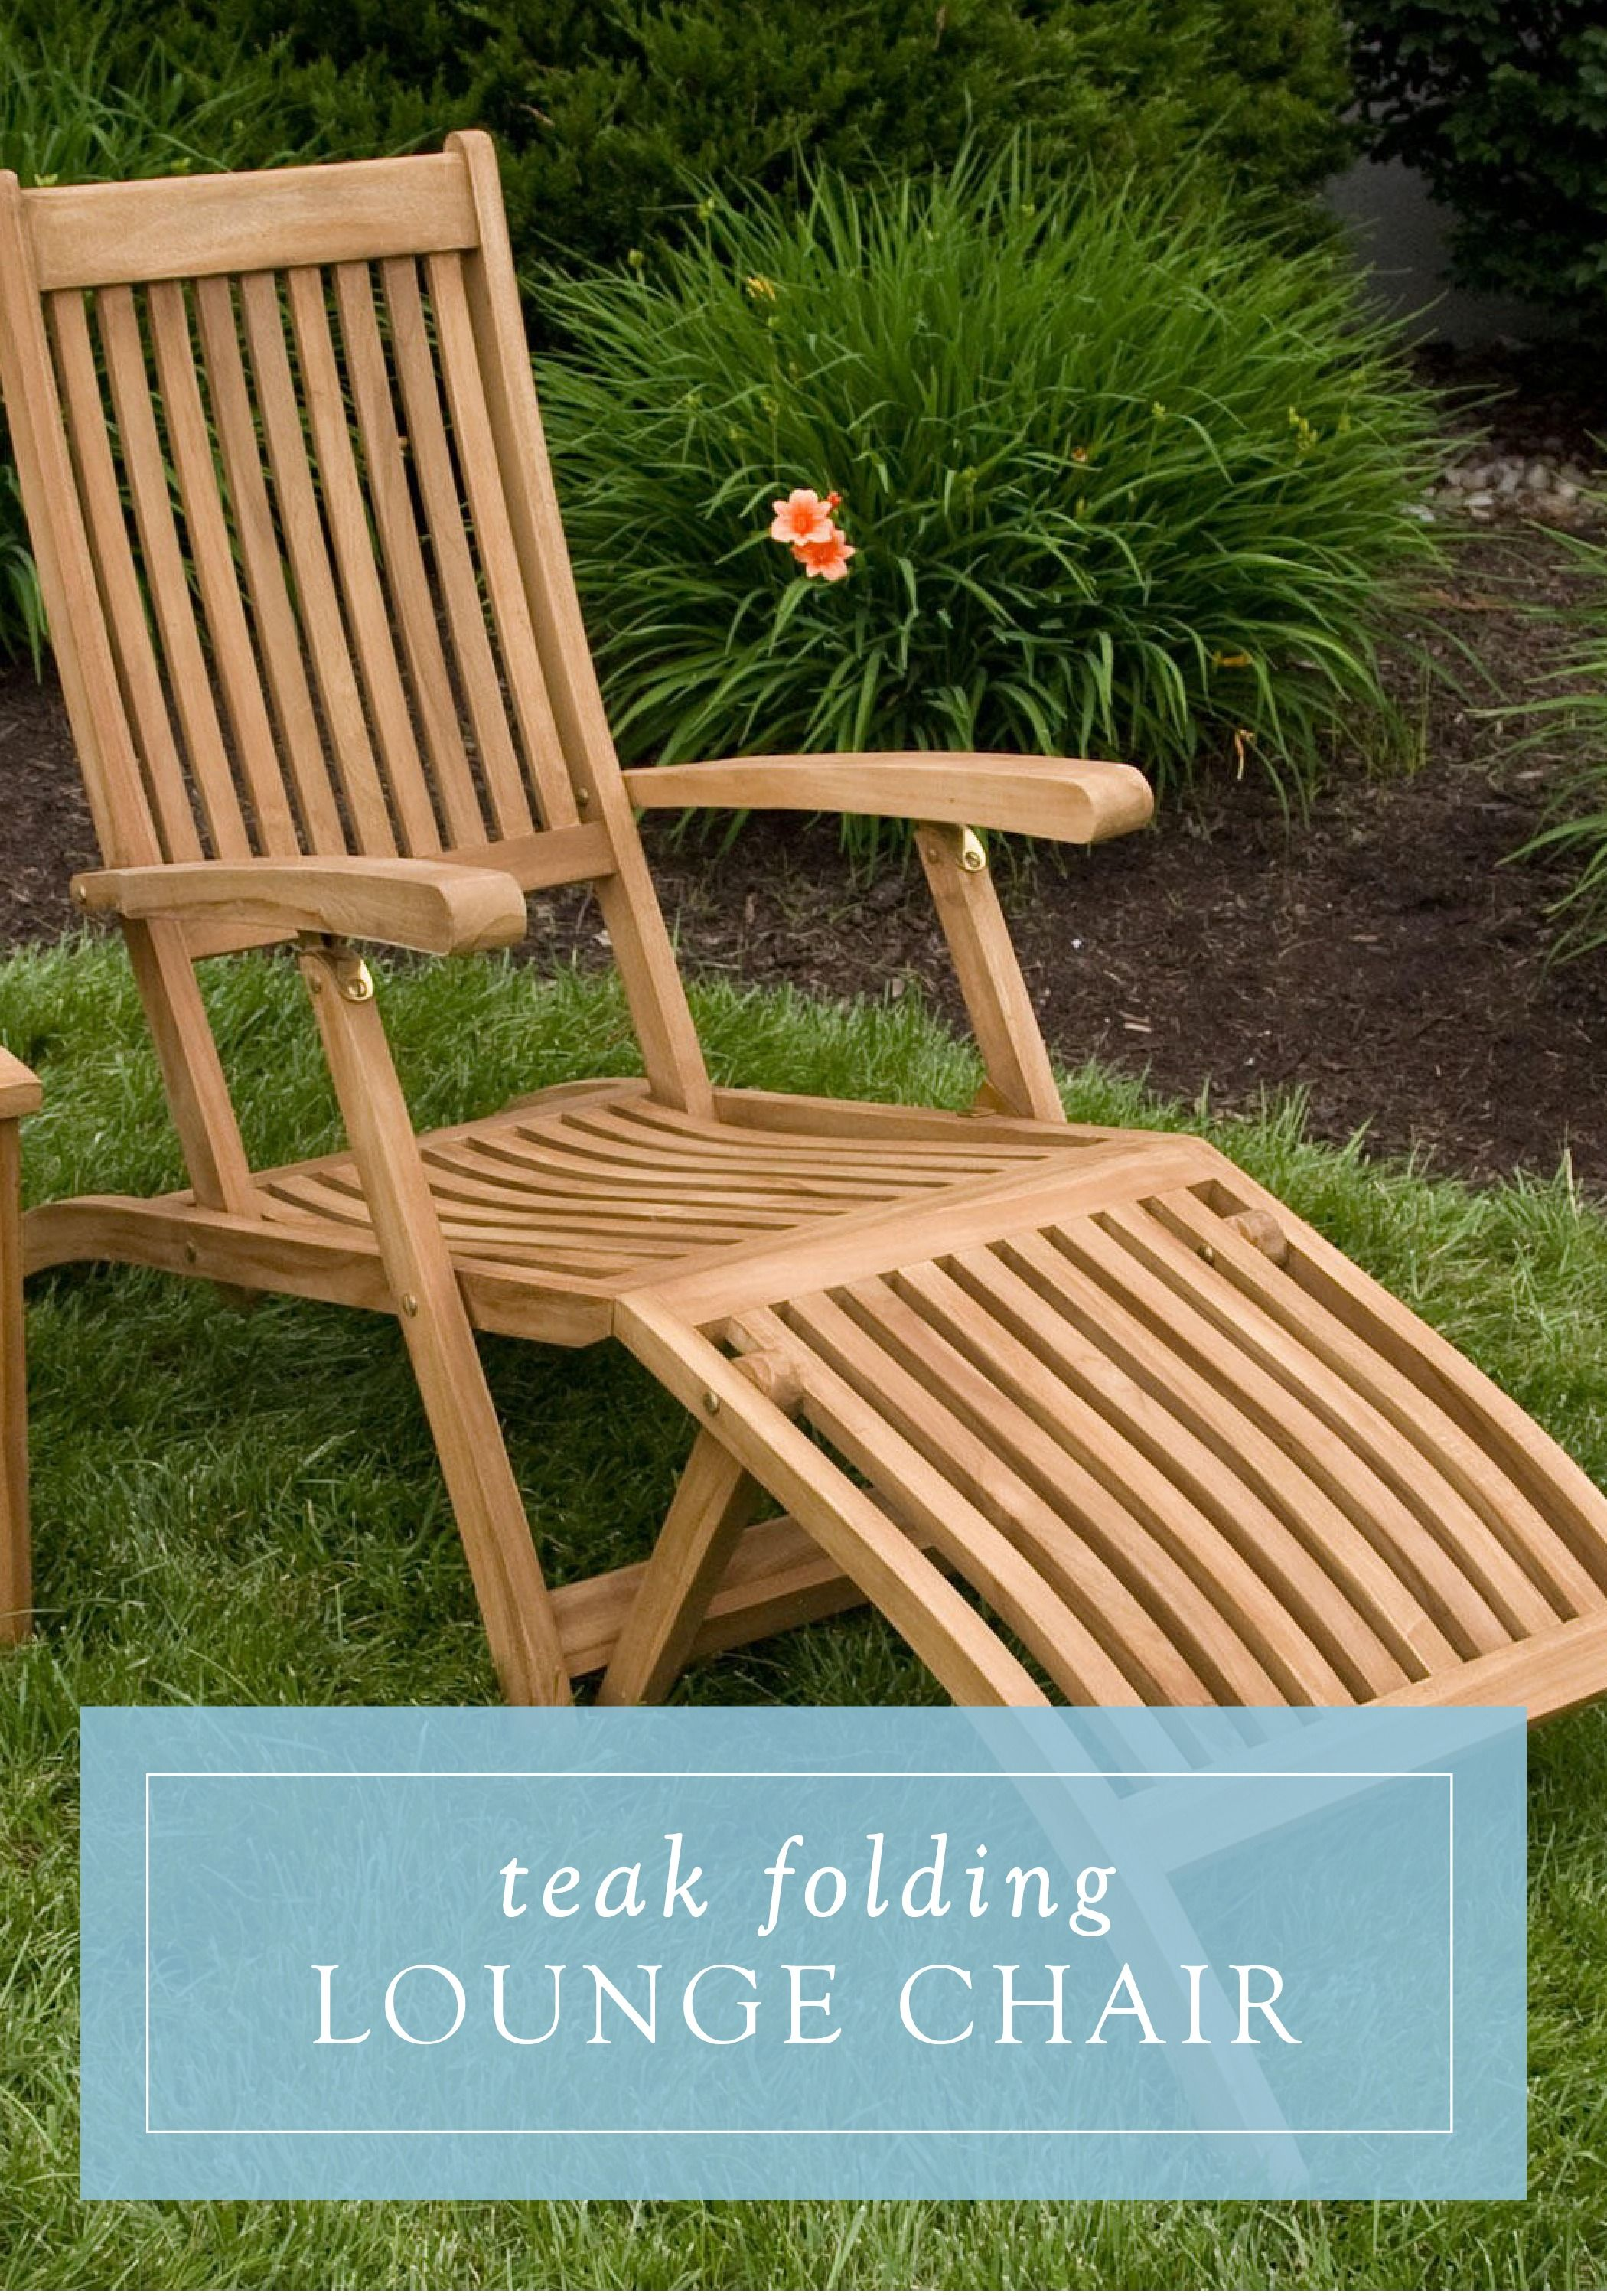 Lounge Poolside This Summer With This Teak Folding Lounge Chair And